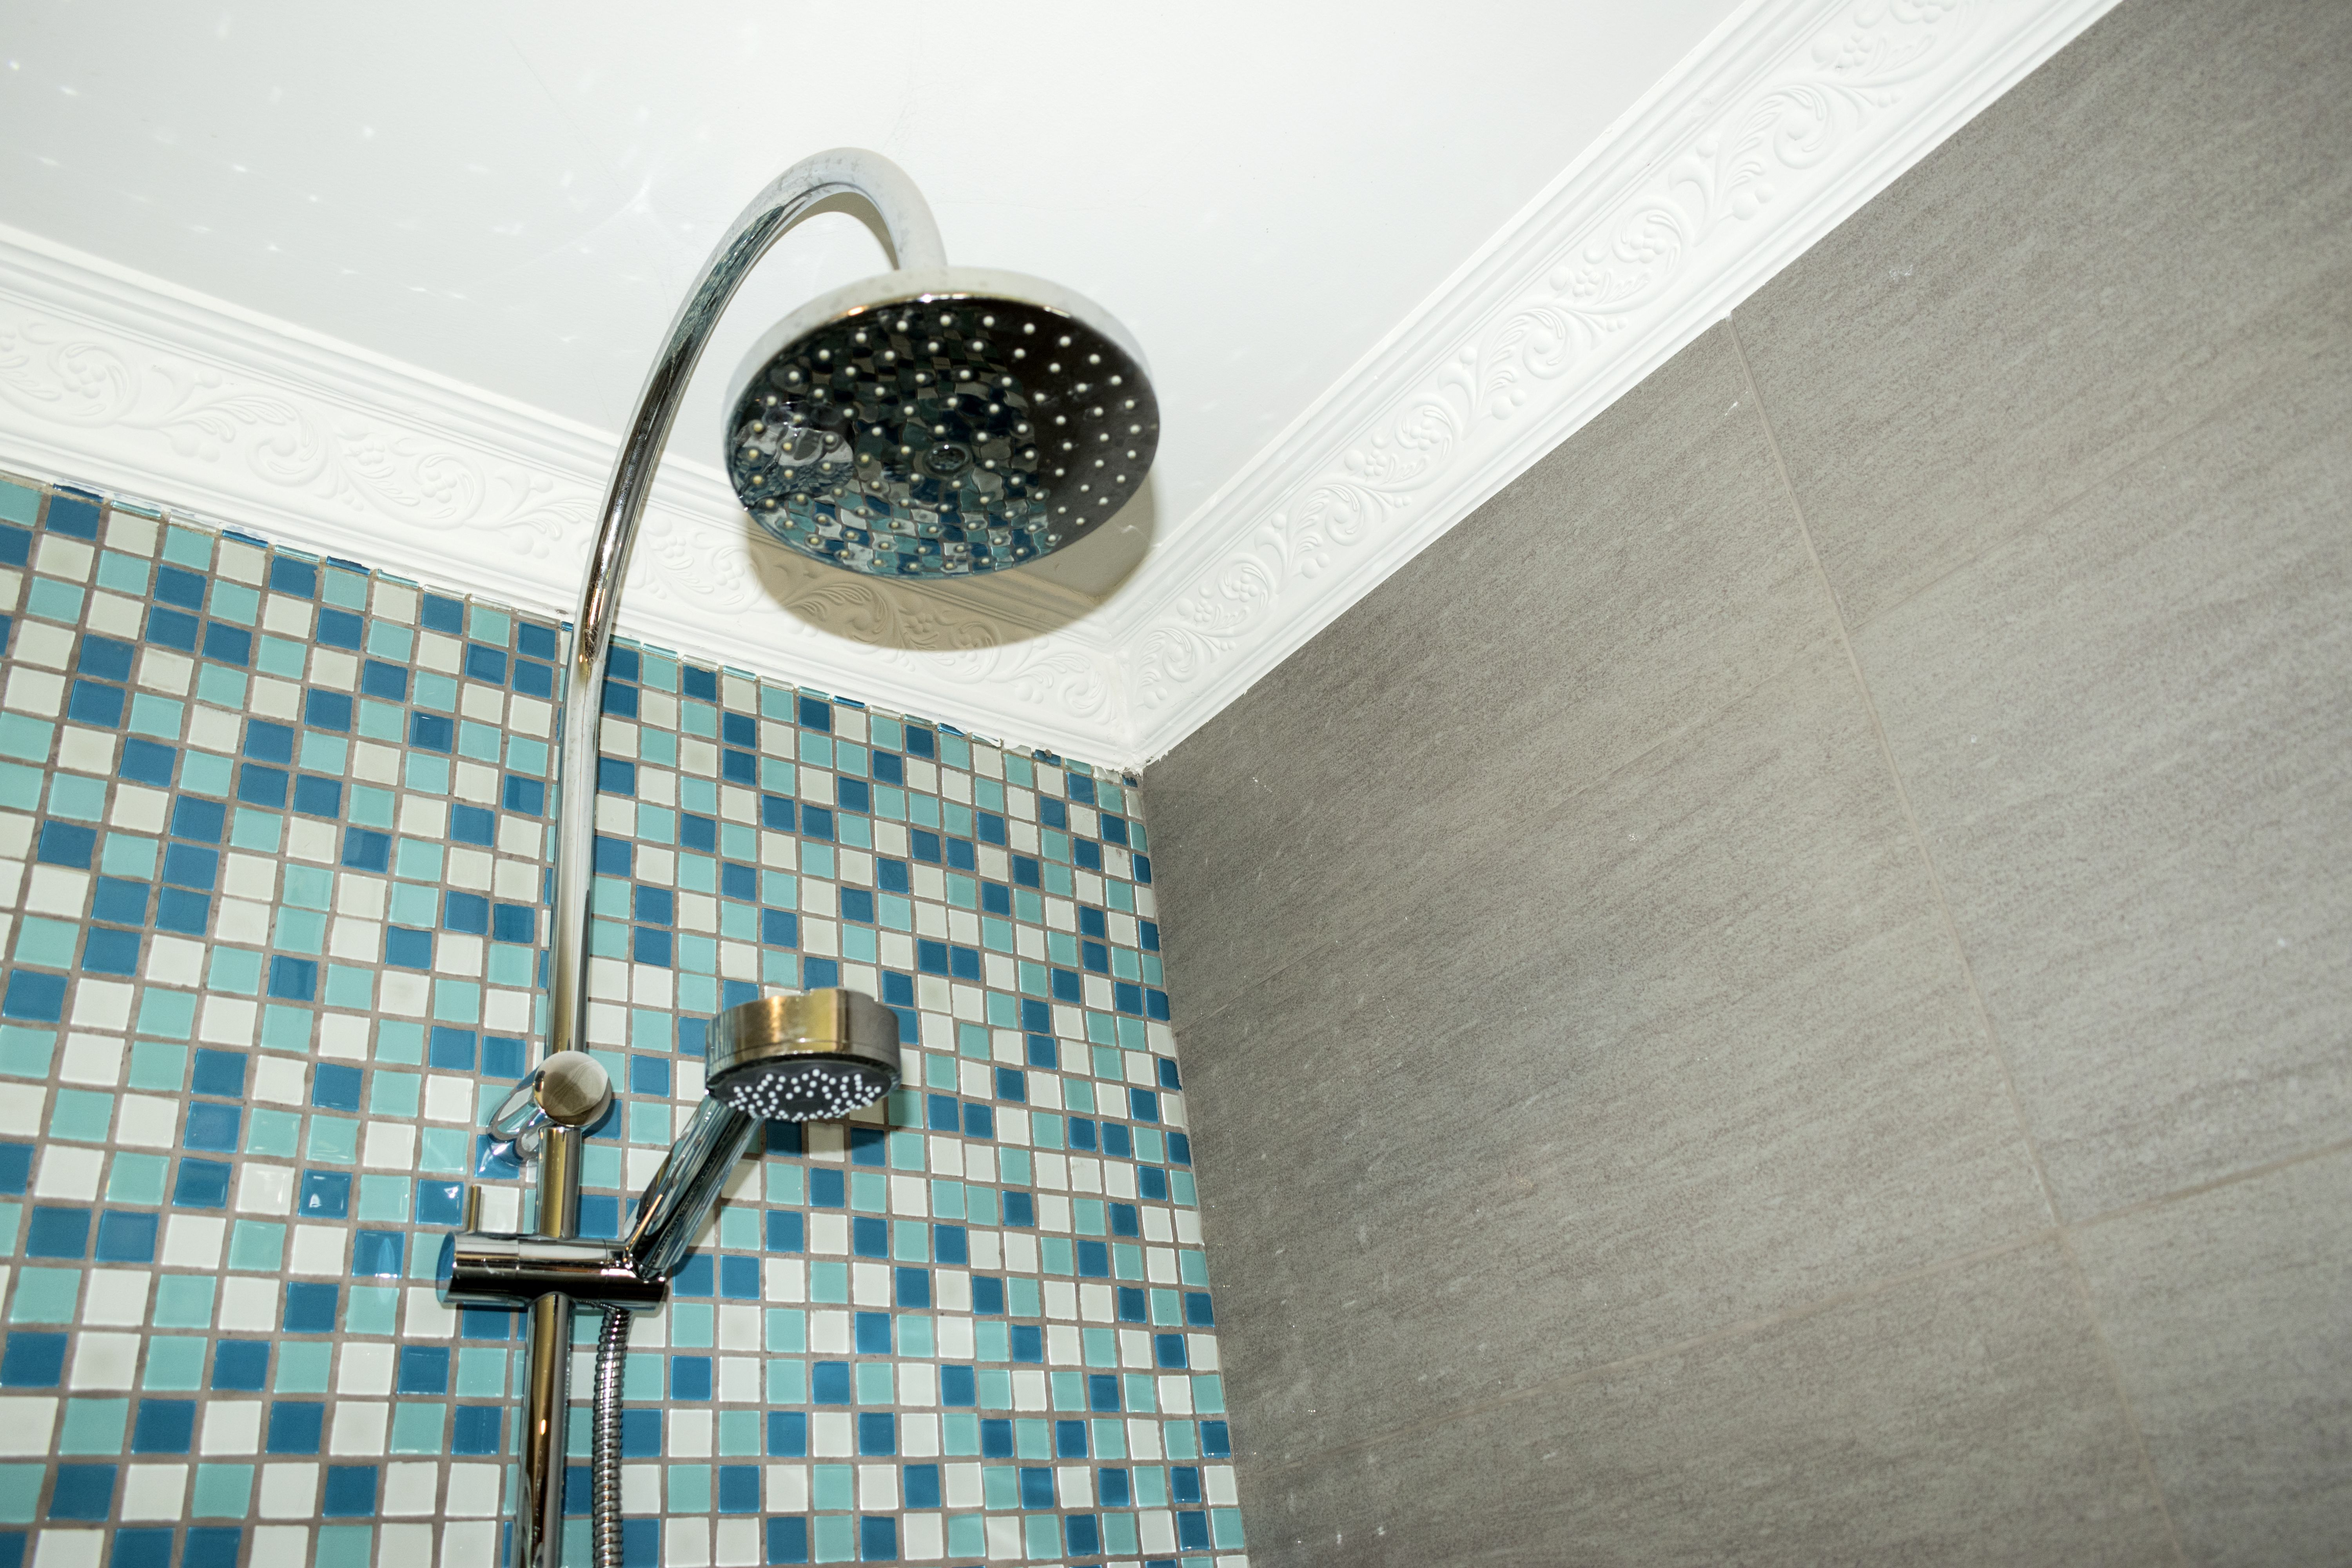 How To Do A Mosaic Tile On An Inside Corner Hunker In 2020 Mosaic Tiles Mosaic Diy Repair